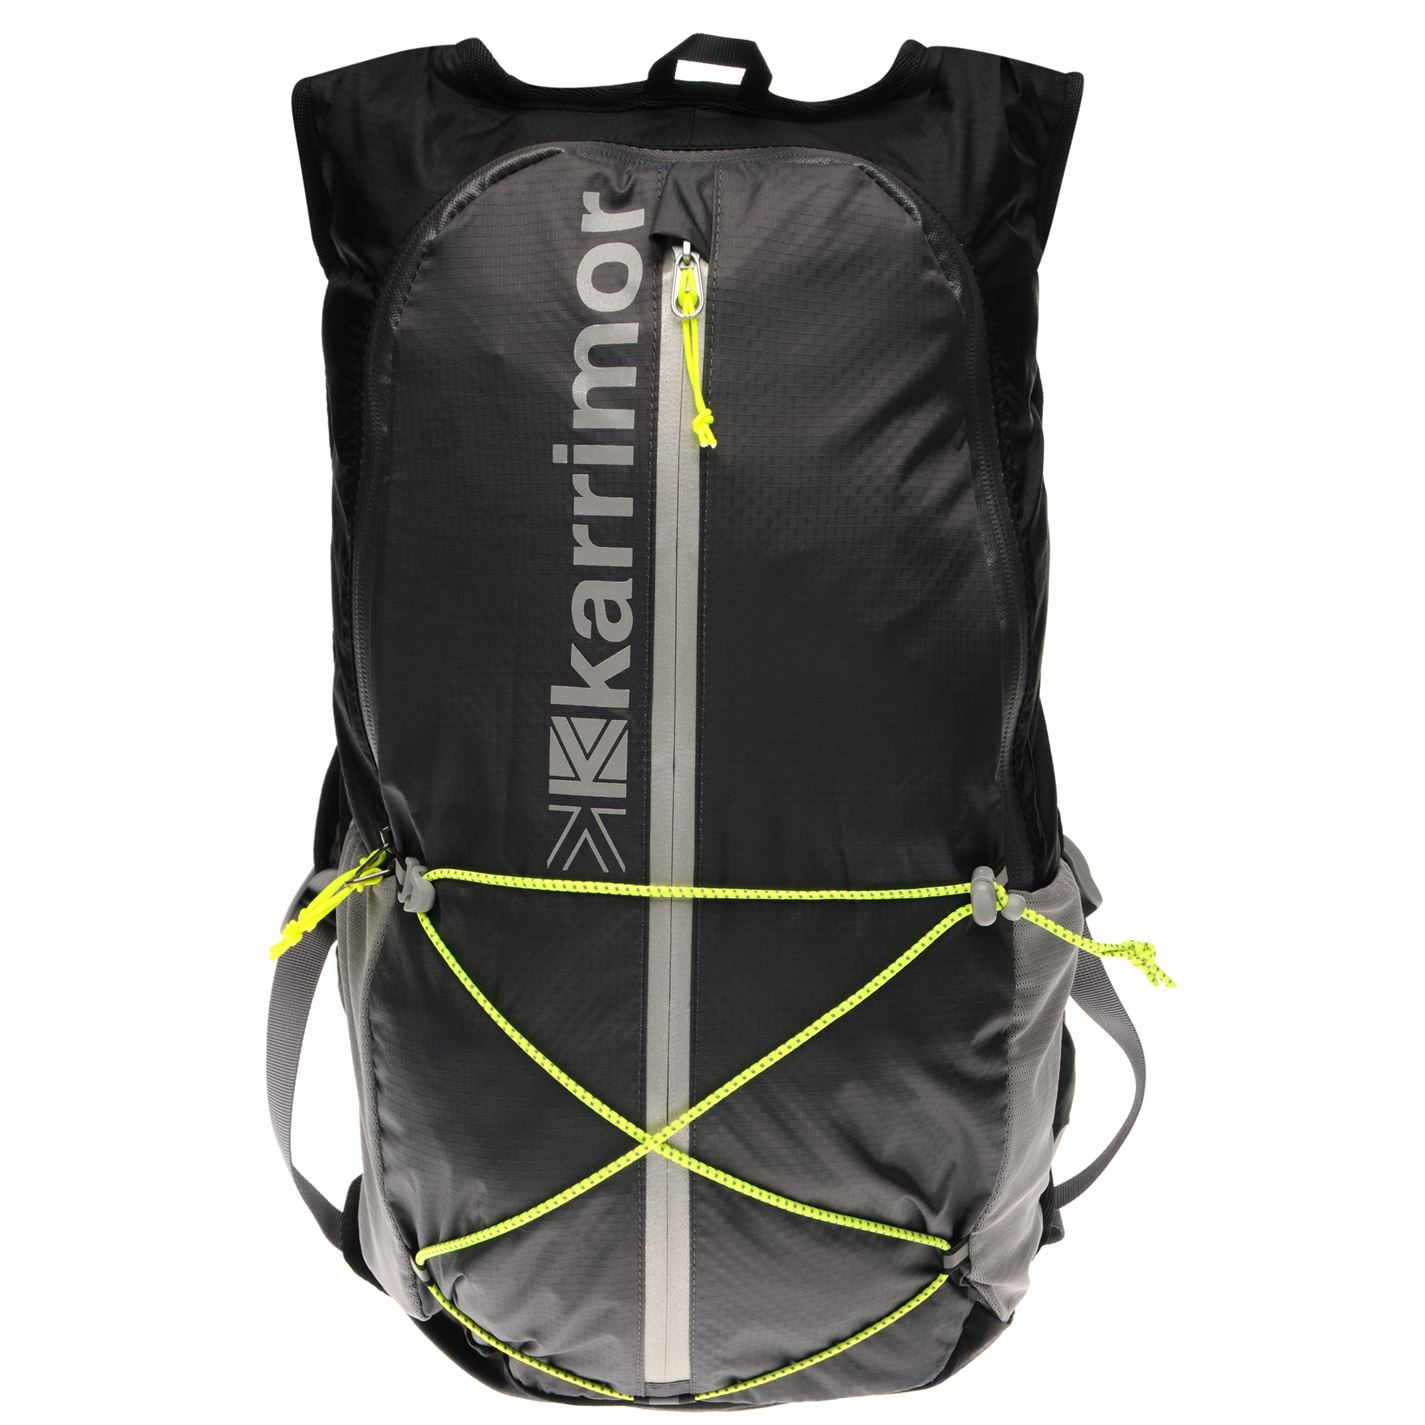 Karrimor-X-Lite-15L-Running-Back-Pack-Travel-Luggage-Everyday-Casual-Bag-New miniatura 4